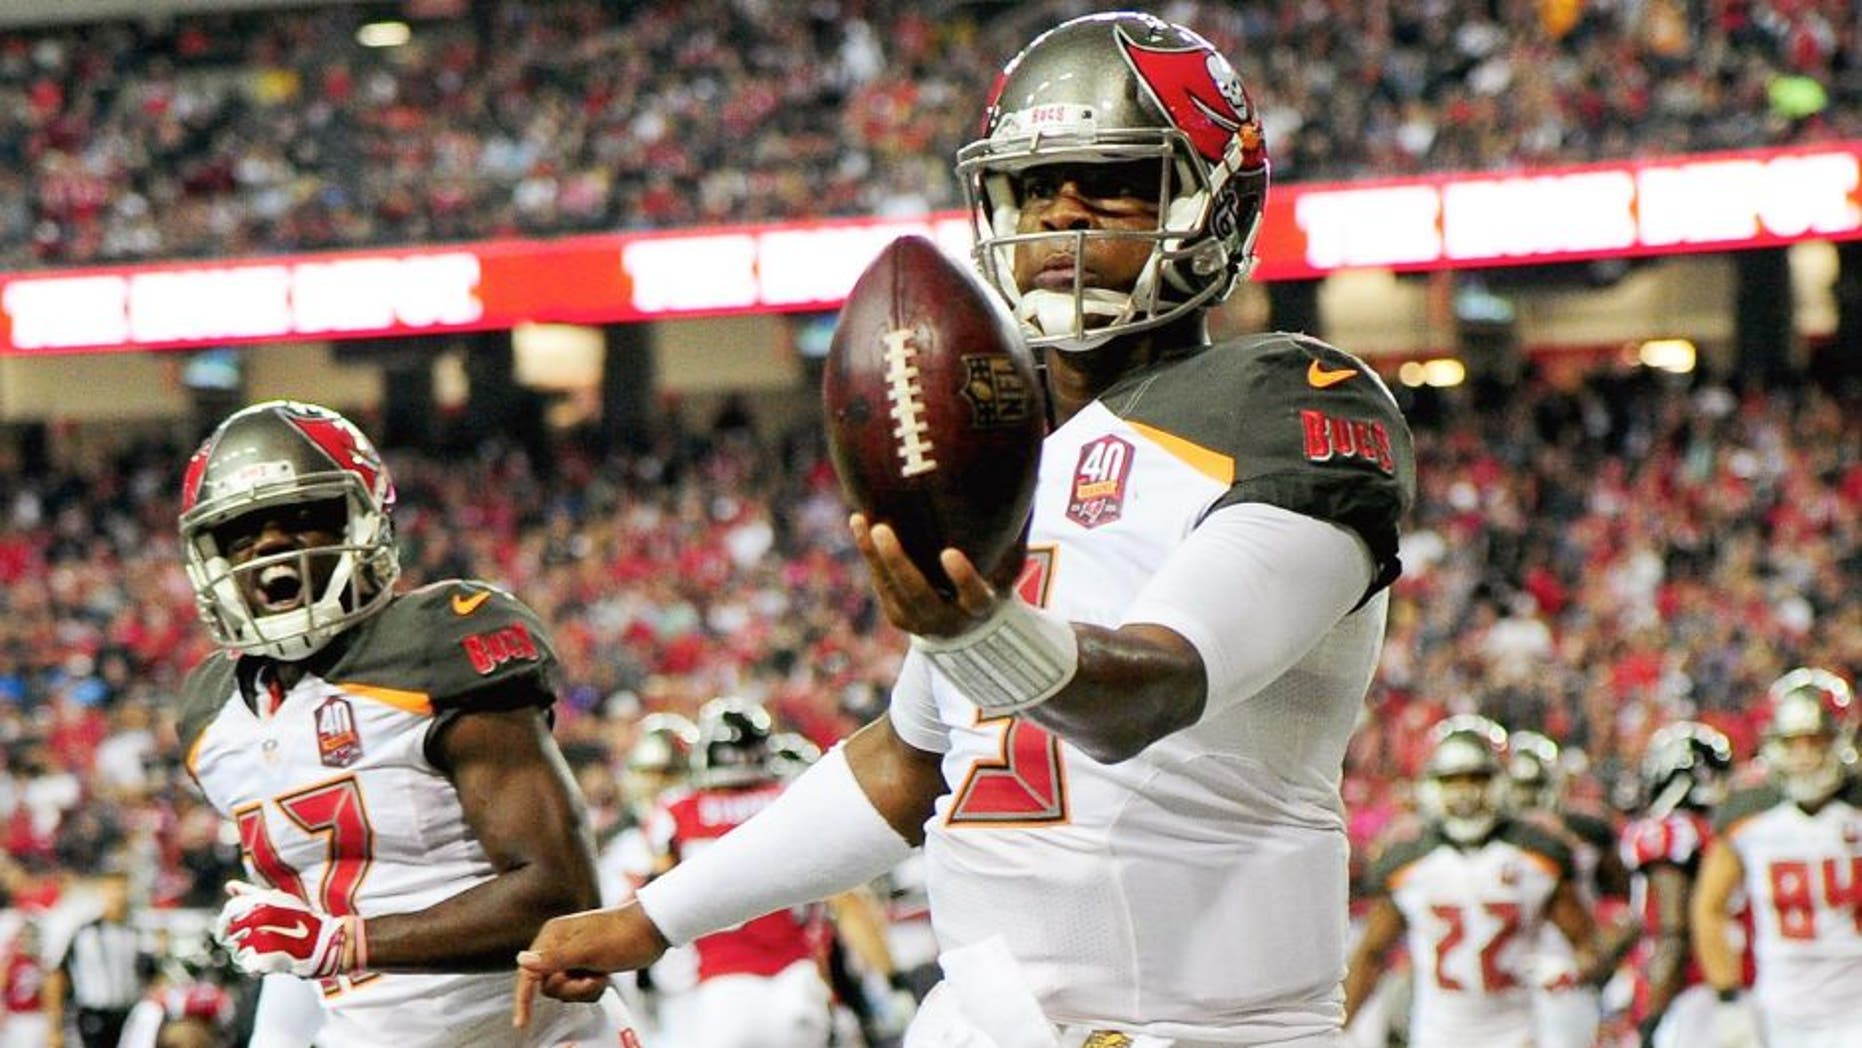 Jameis Winston #3 of the Tampa Bay Buccaneers celebrates a rushing touchdown during the second half against the Atlanta Falcons at the Georgia Dome on November 1, 2015 in Atlanta, Georgia. (Photo by Scott Cunningham/Getty Images)